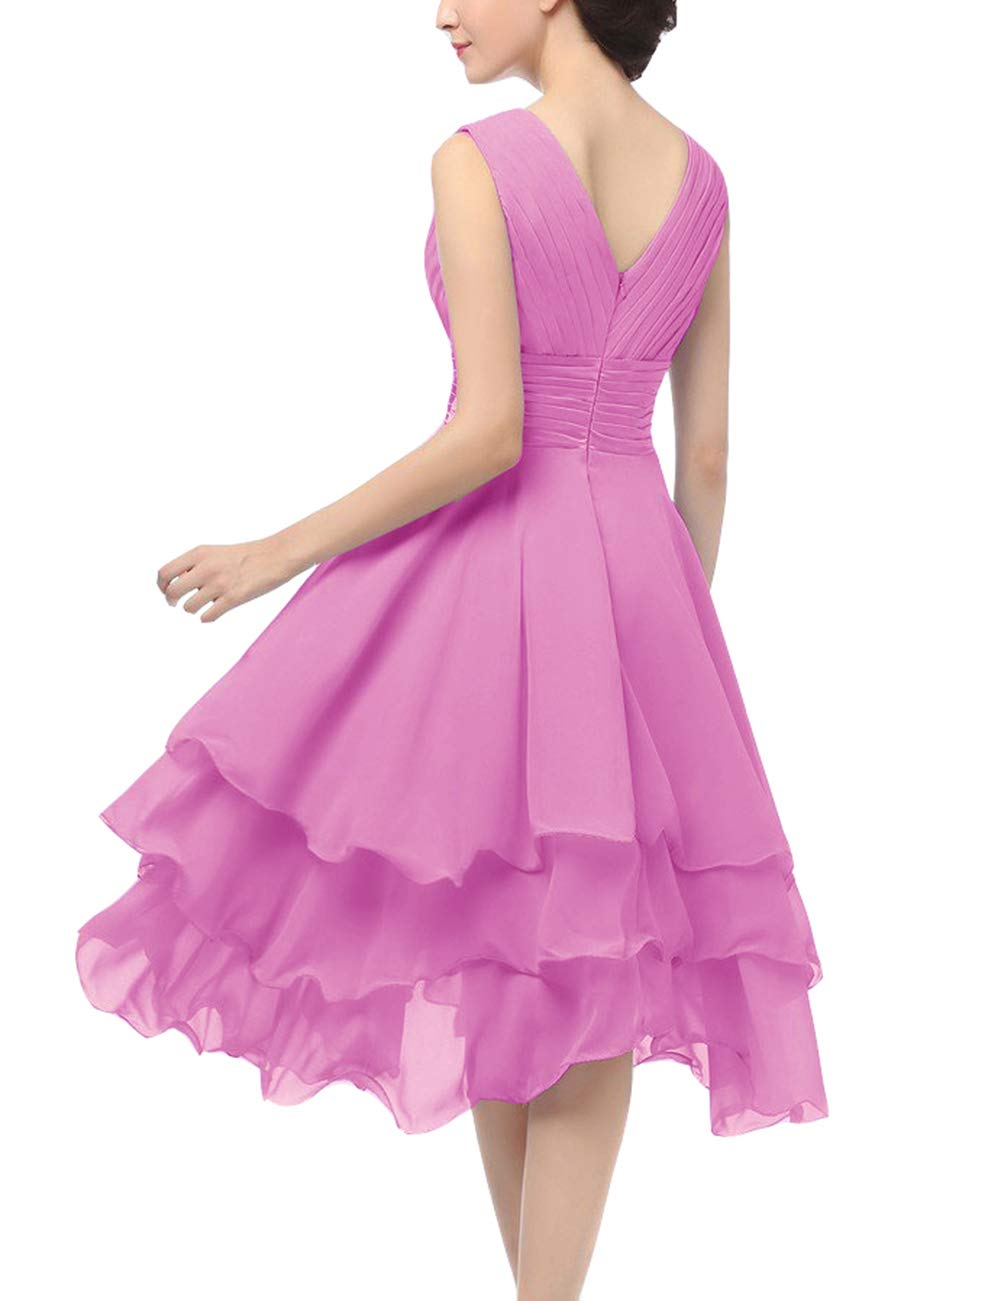 Uther Short Bridesmaid Dress Chiffon Formal Prom Dresses V-Neck Party Gown Sleeveless